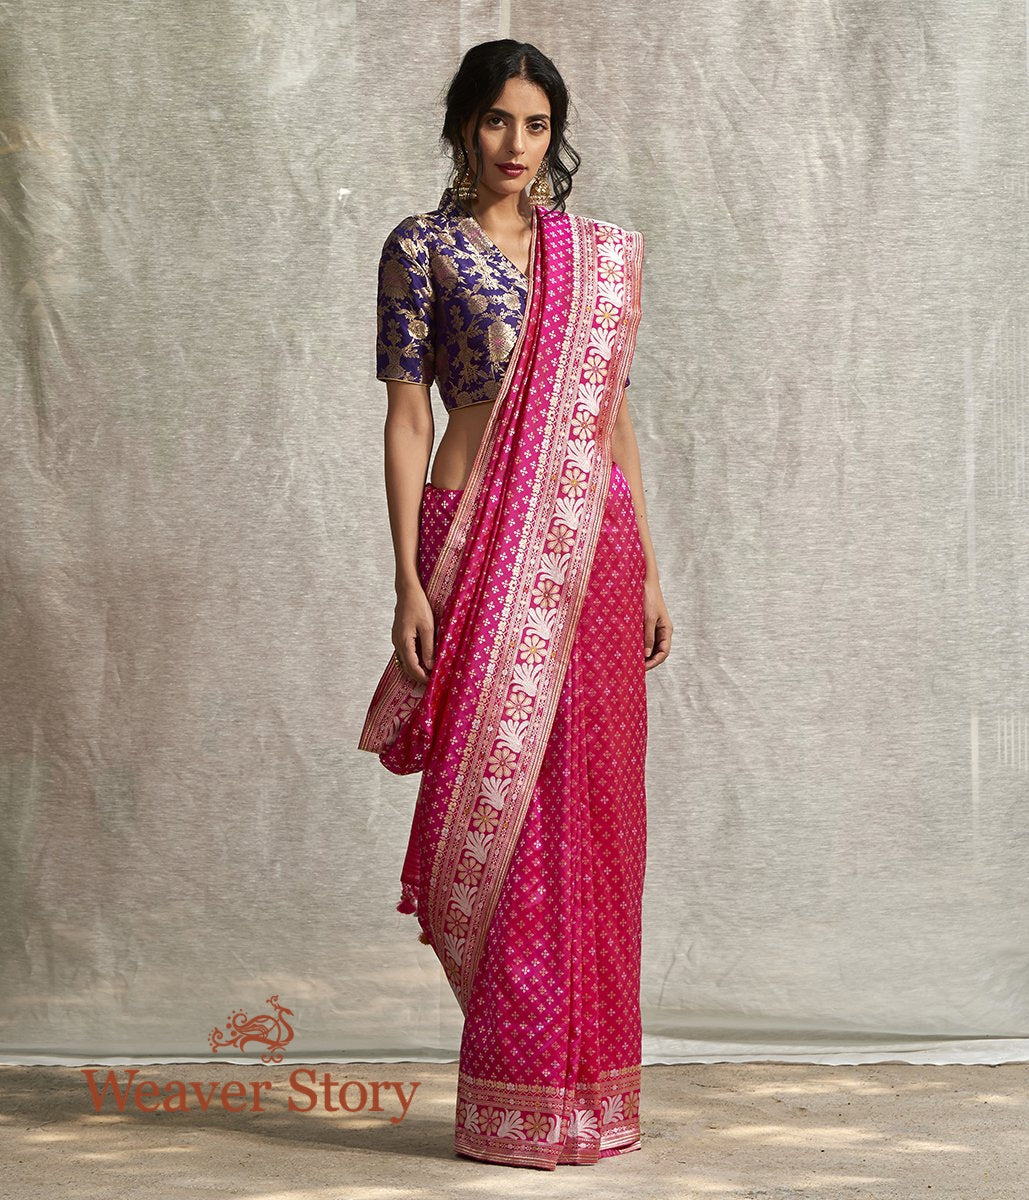 Handwoven Pink Sona Rupa Zari Booti Saree with Floral Border